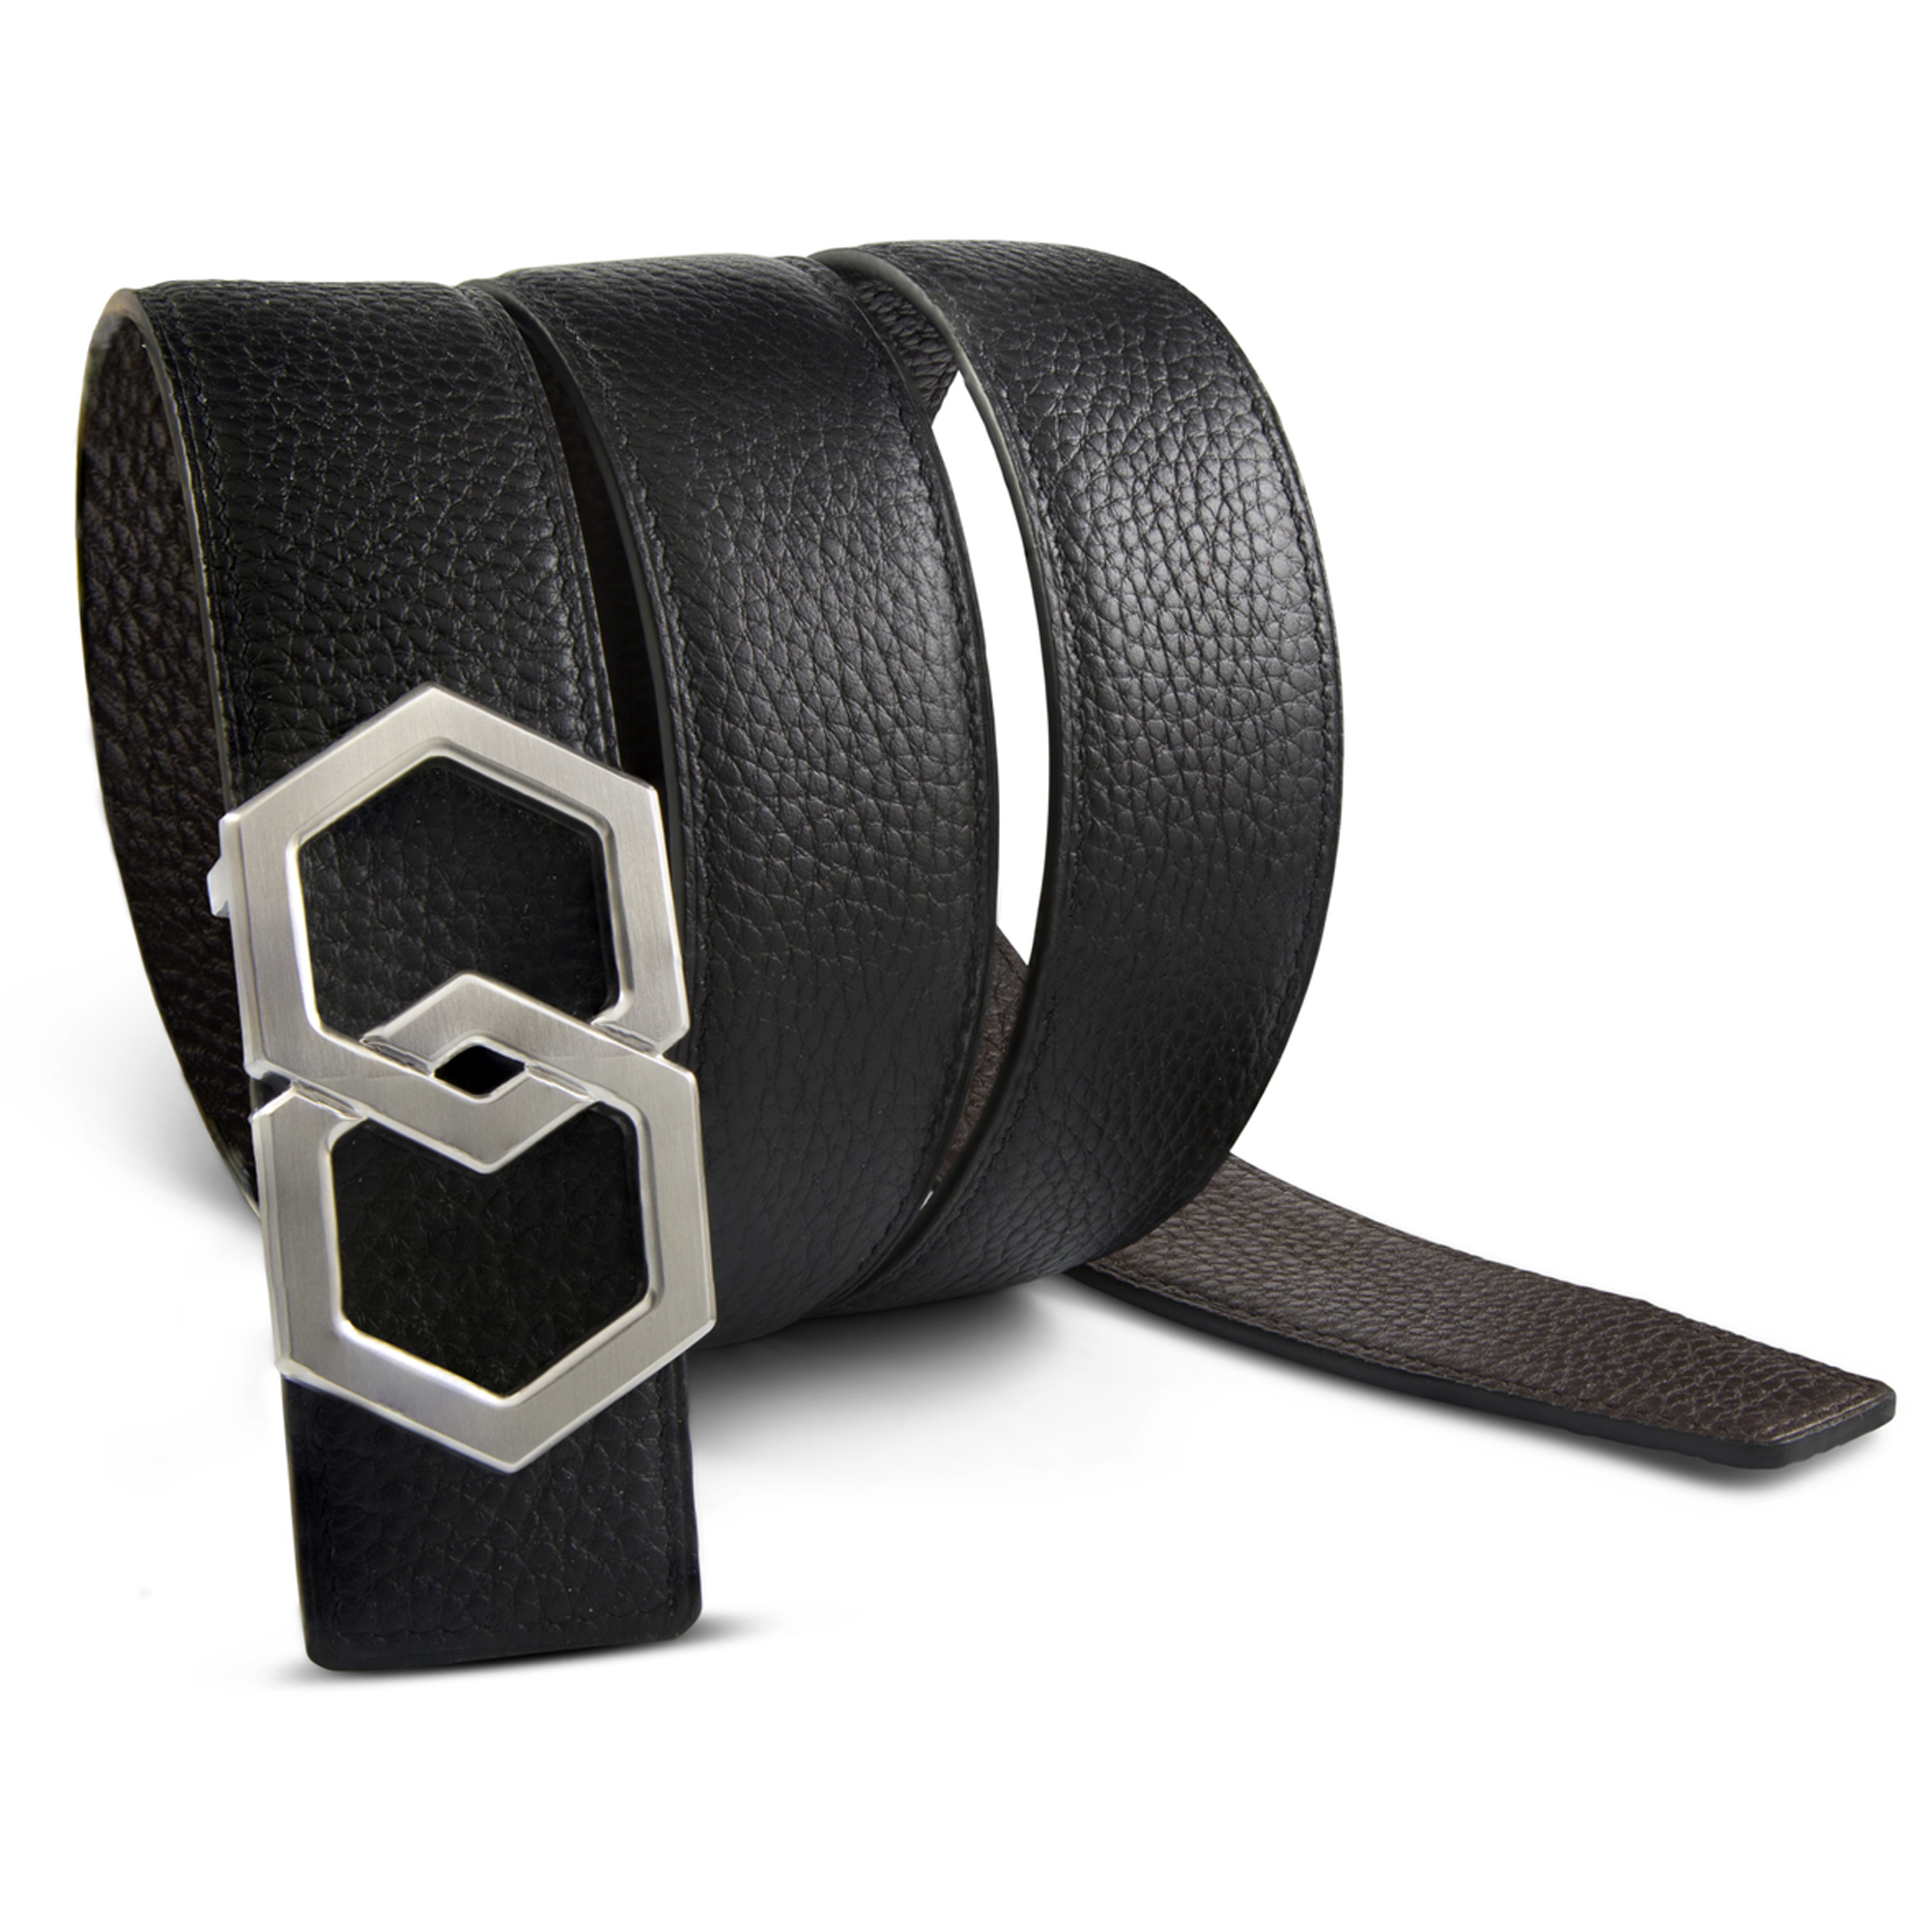 METALE BROSSÉ Luxury Belt - Dark Brown/Noche